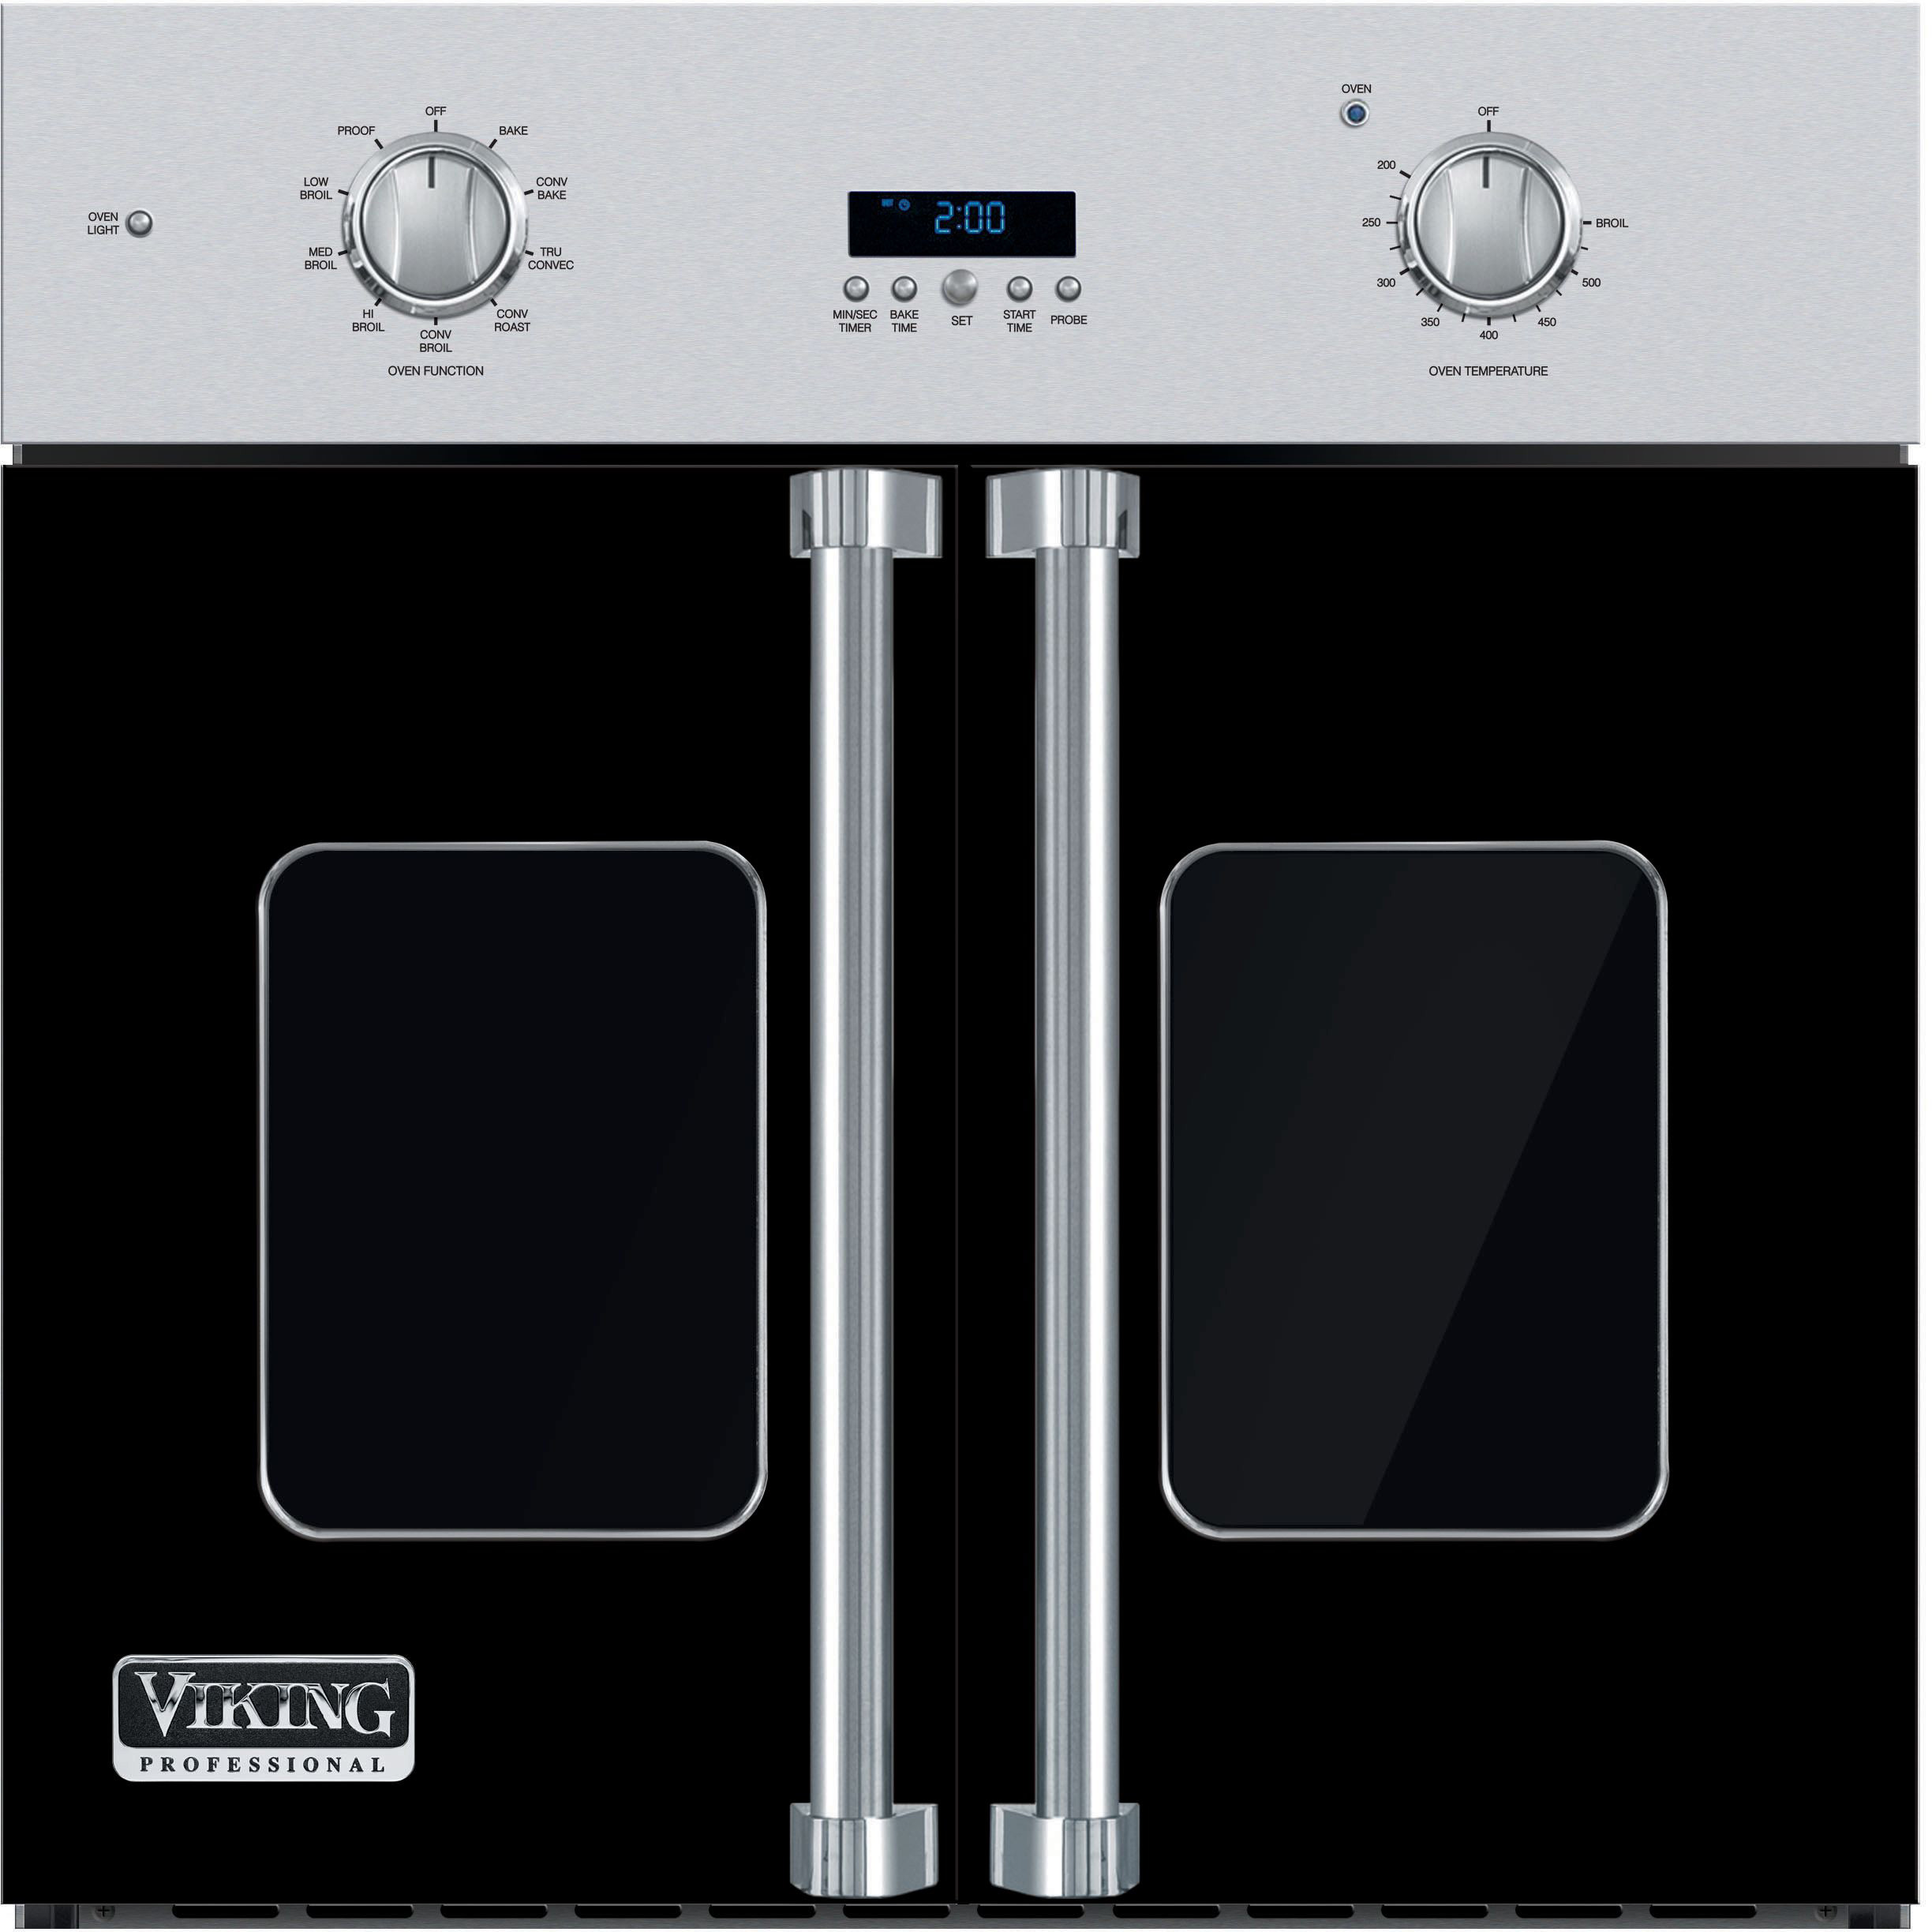 Viking Vsof730bk 30 Inch Single French Door Wall Oven With 47 Cu Parts Diagram For Gourmet Handle Kitchen Faucet 150 450 Ft Vari Speed Dual Flow Truconvec Cooking Capacity Glo Glass Enclosed Infrared